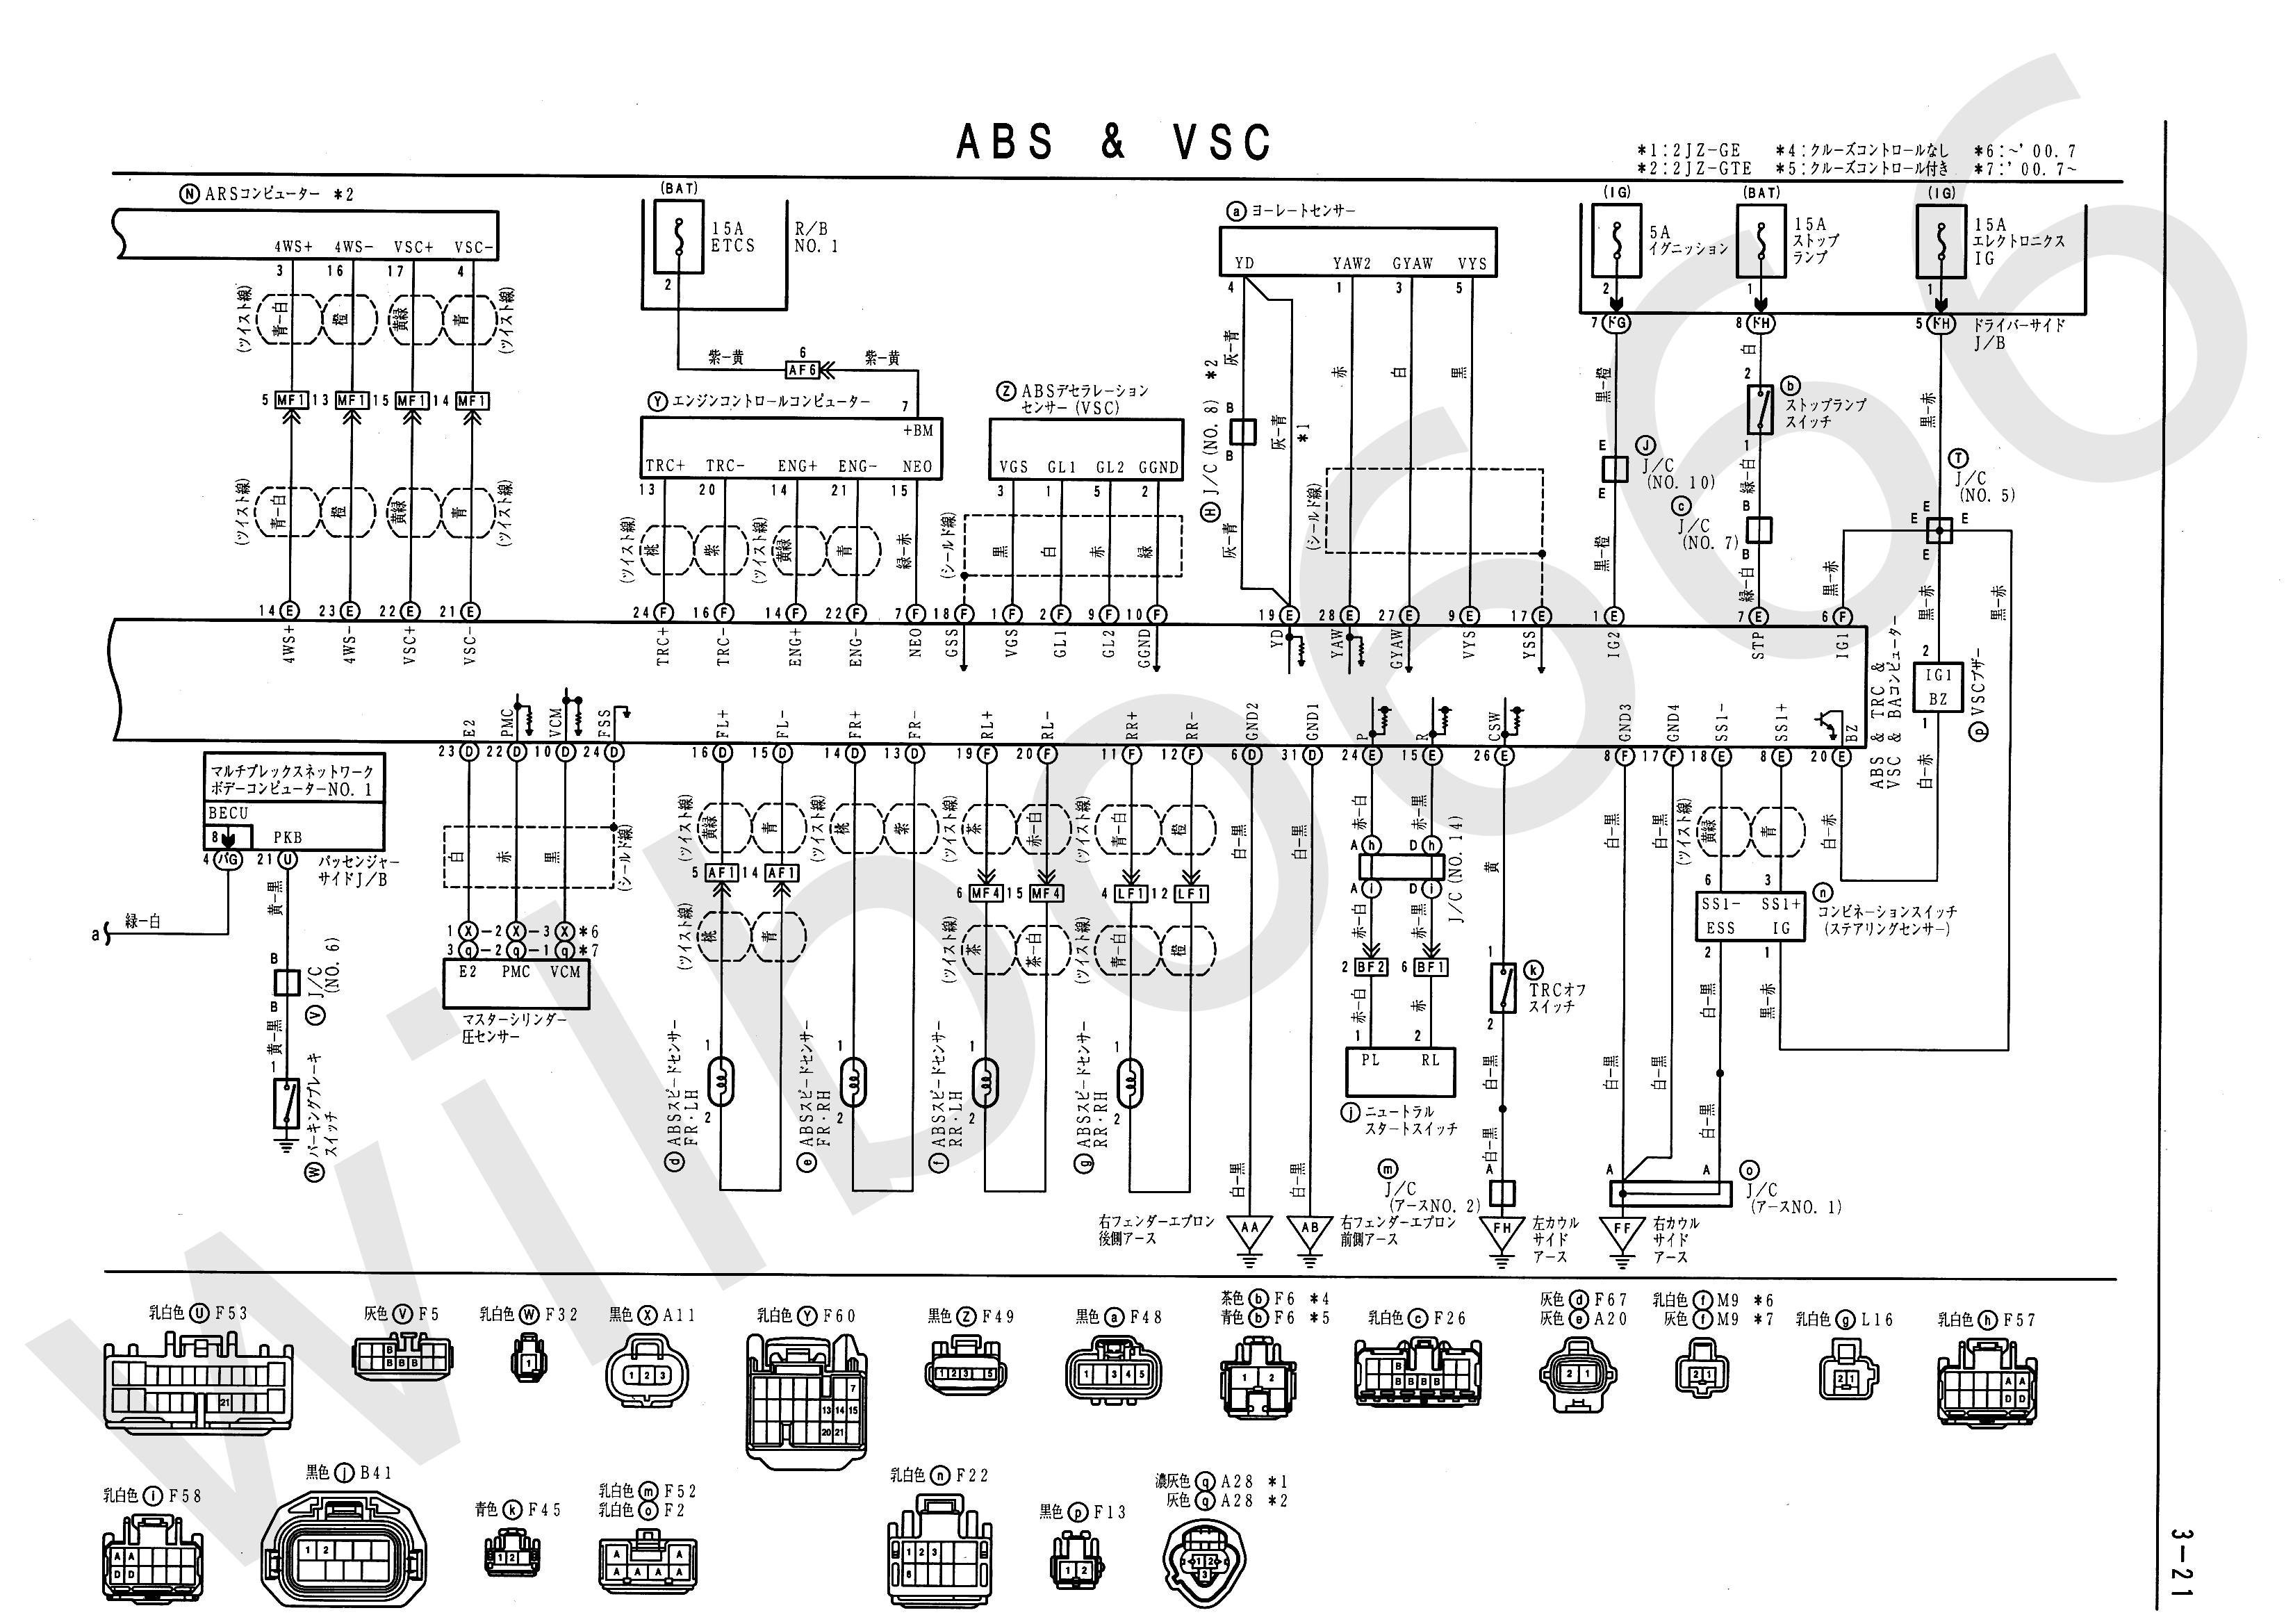 JZS161 Electrical Wiring Diagram 6748505 3 21?resize\\\\\\\=840%2C595 bad boy wiring diagram wiring diagram shrutiradio wire harness diagram at fashall.co